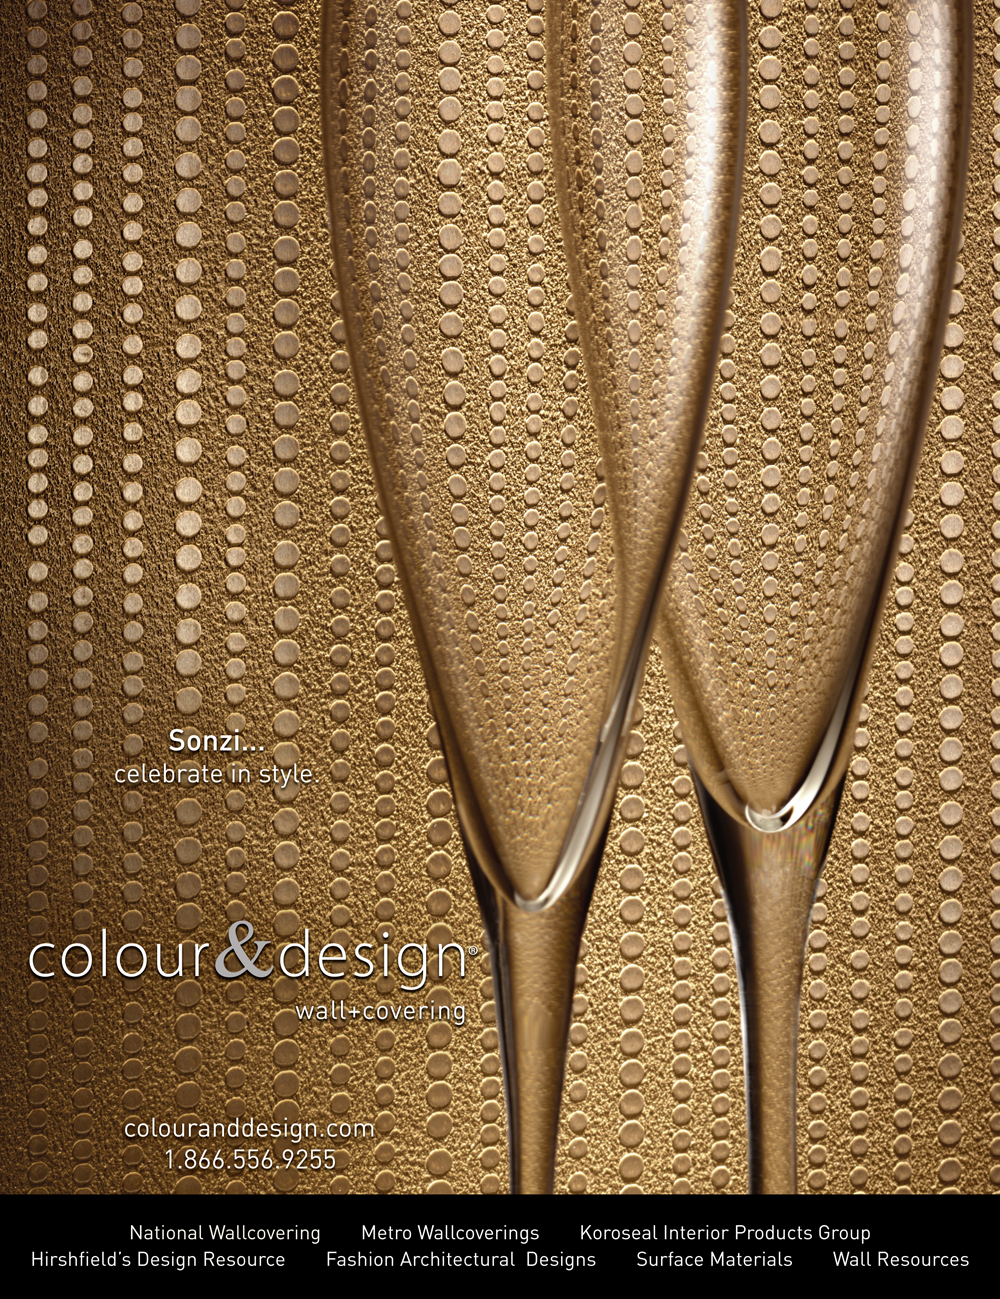 colour and design commercial wallcovering sonzi champaigne glasses tapestry gold